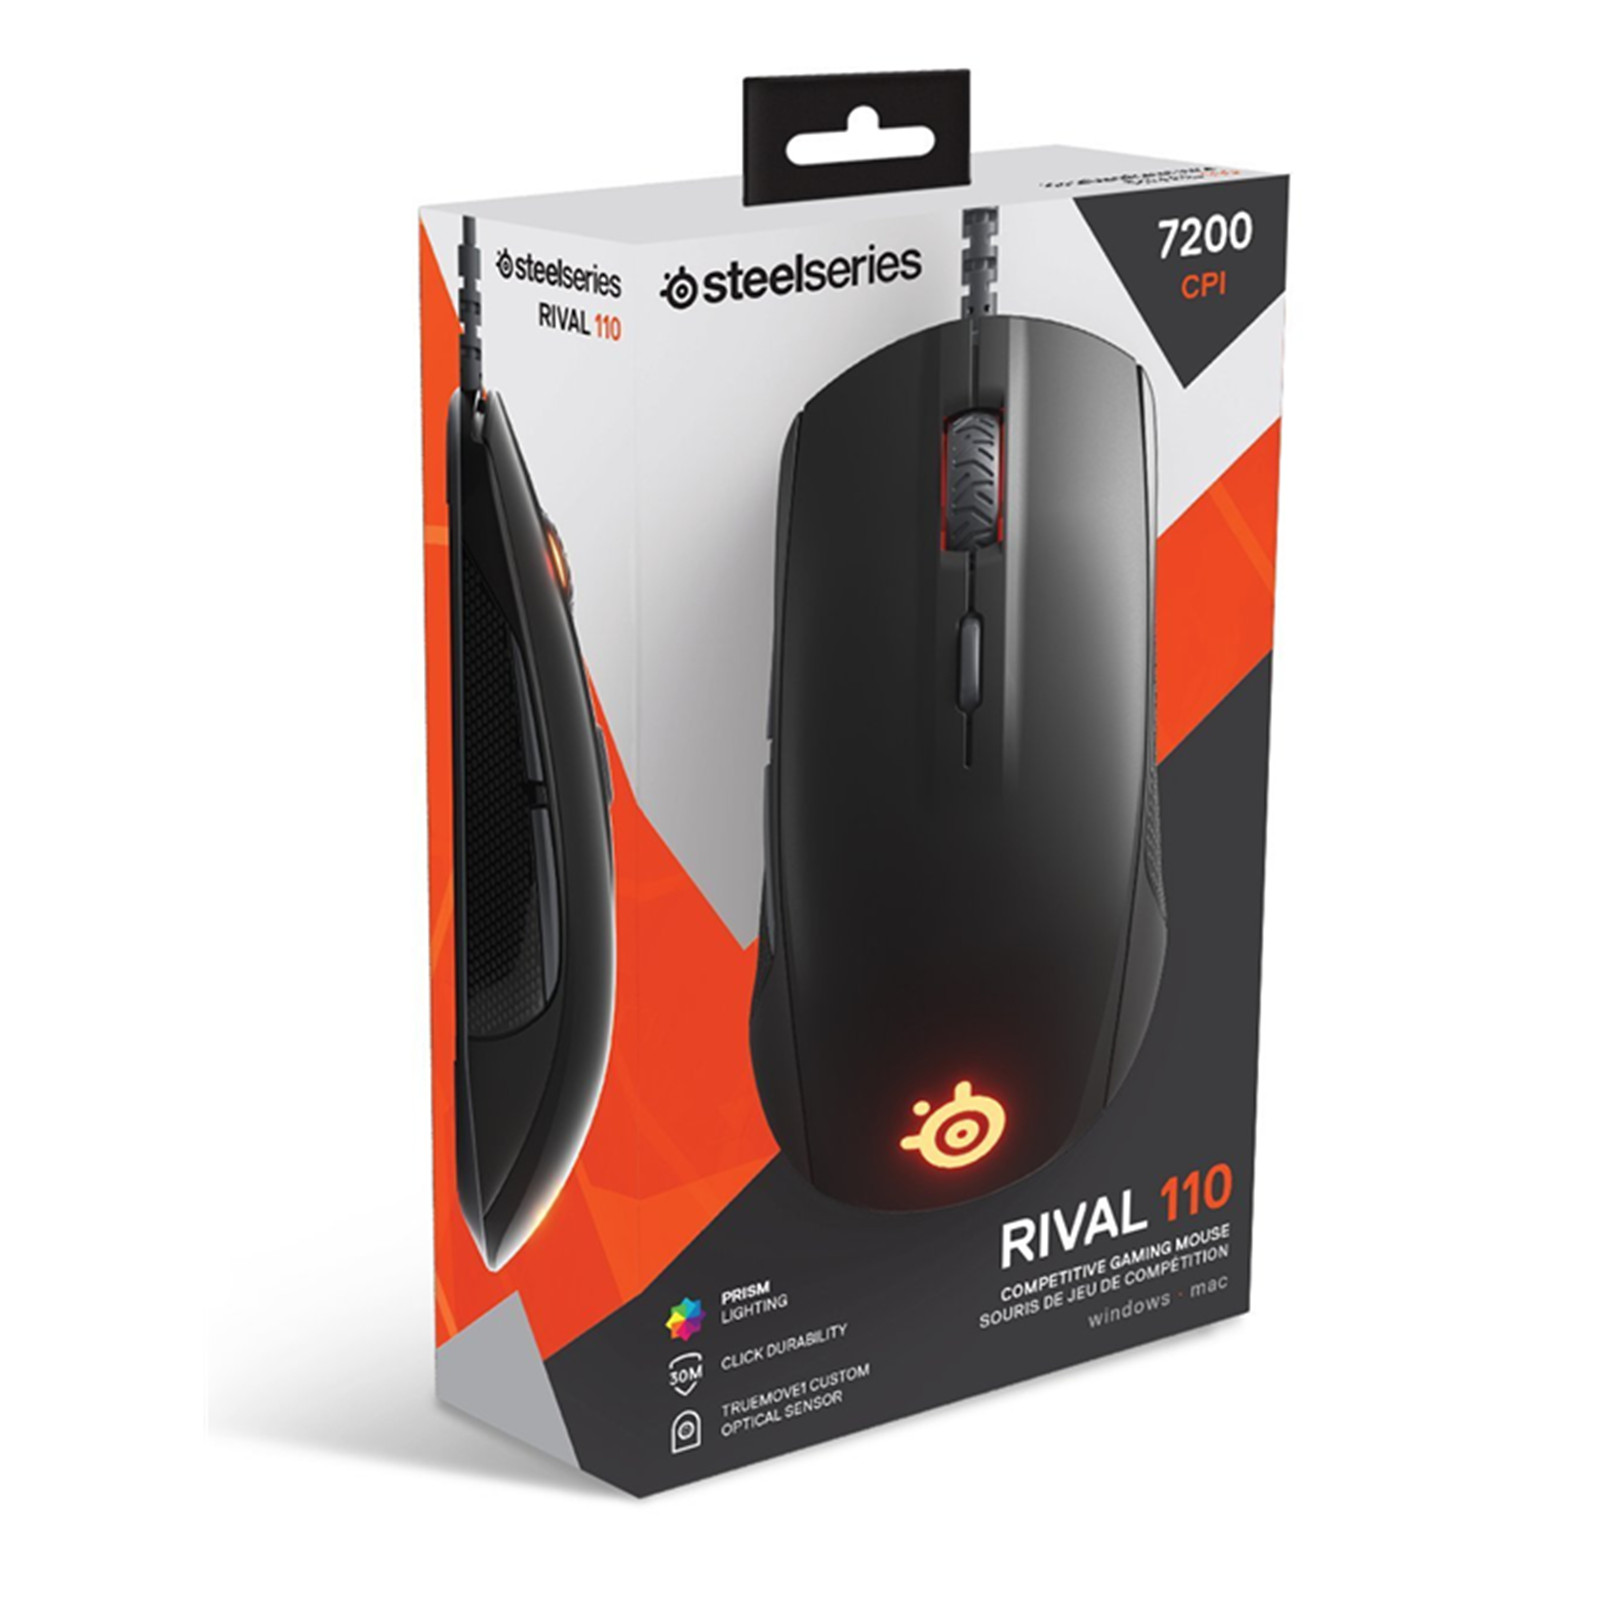 7489a3a2a86 Steelseries Rival 110 Optical Gaming Mouse - Black, Custom TrueMove1, 7,200  CPI, 240 IPS, Prism RGB